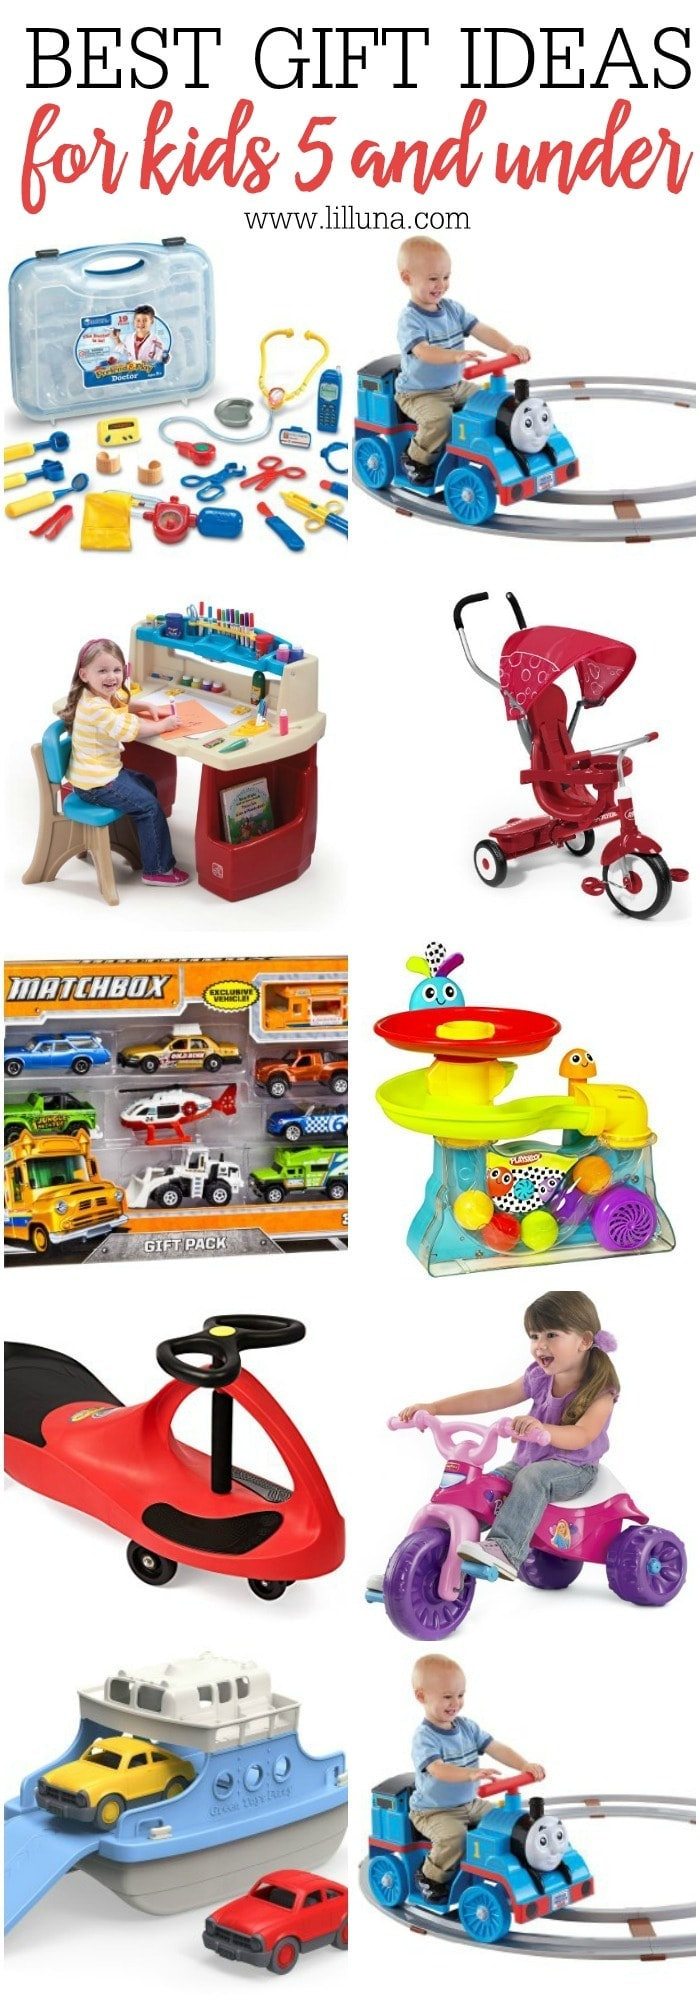 the best gift ideas for kids 5 and under great ideas for christmas or even